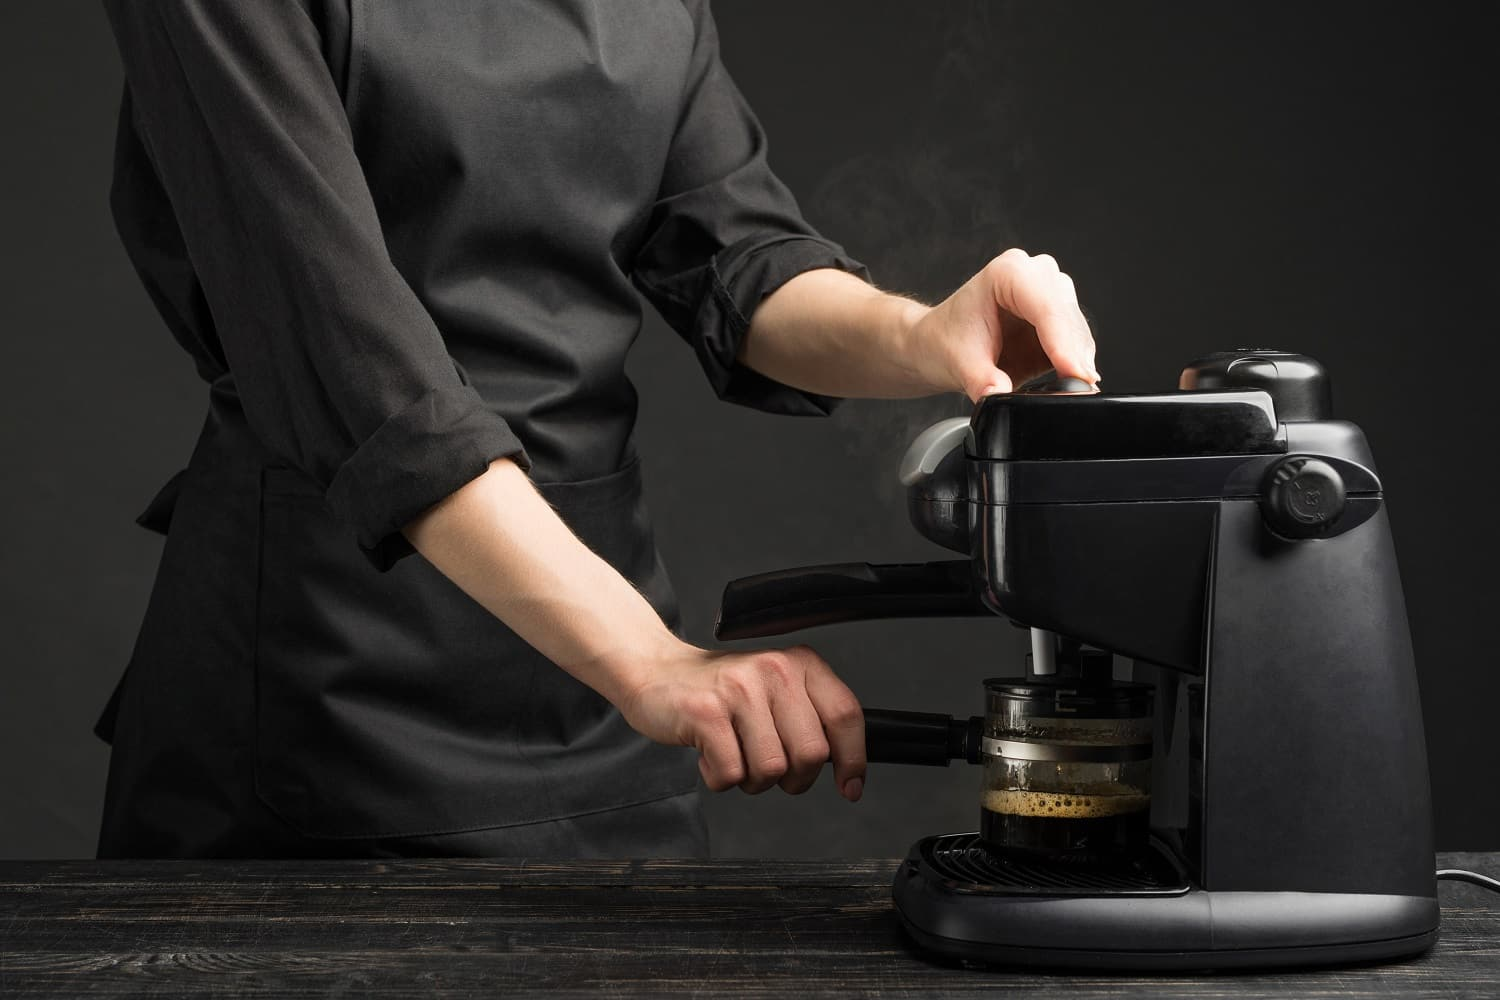 Professional barist with a coffee machine, brews coffee. Against a dark background